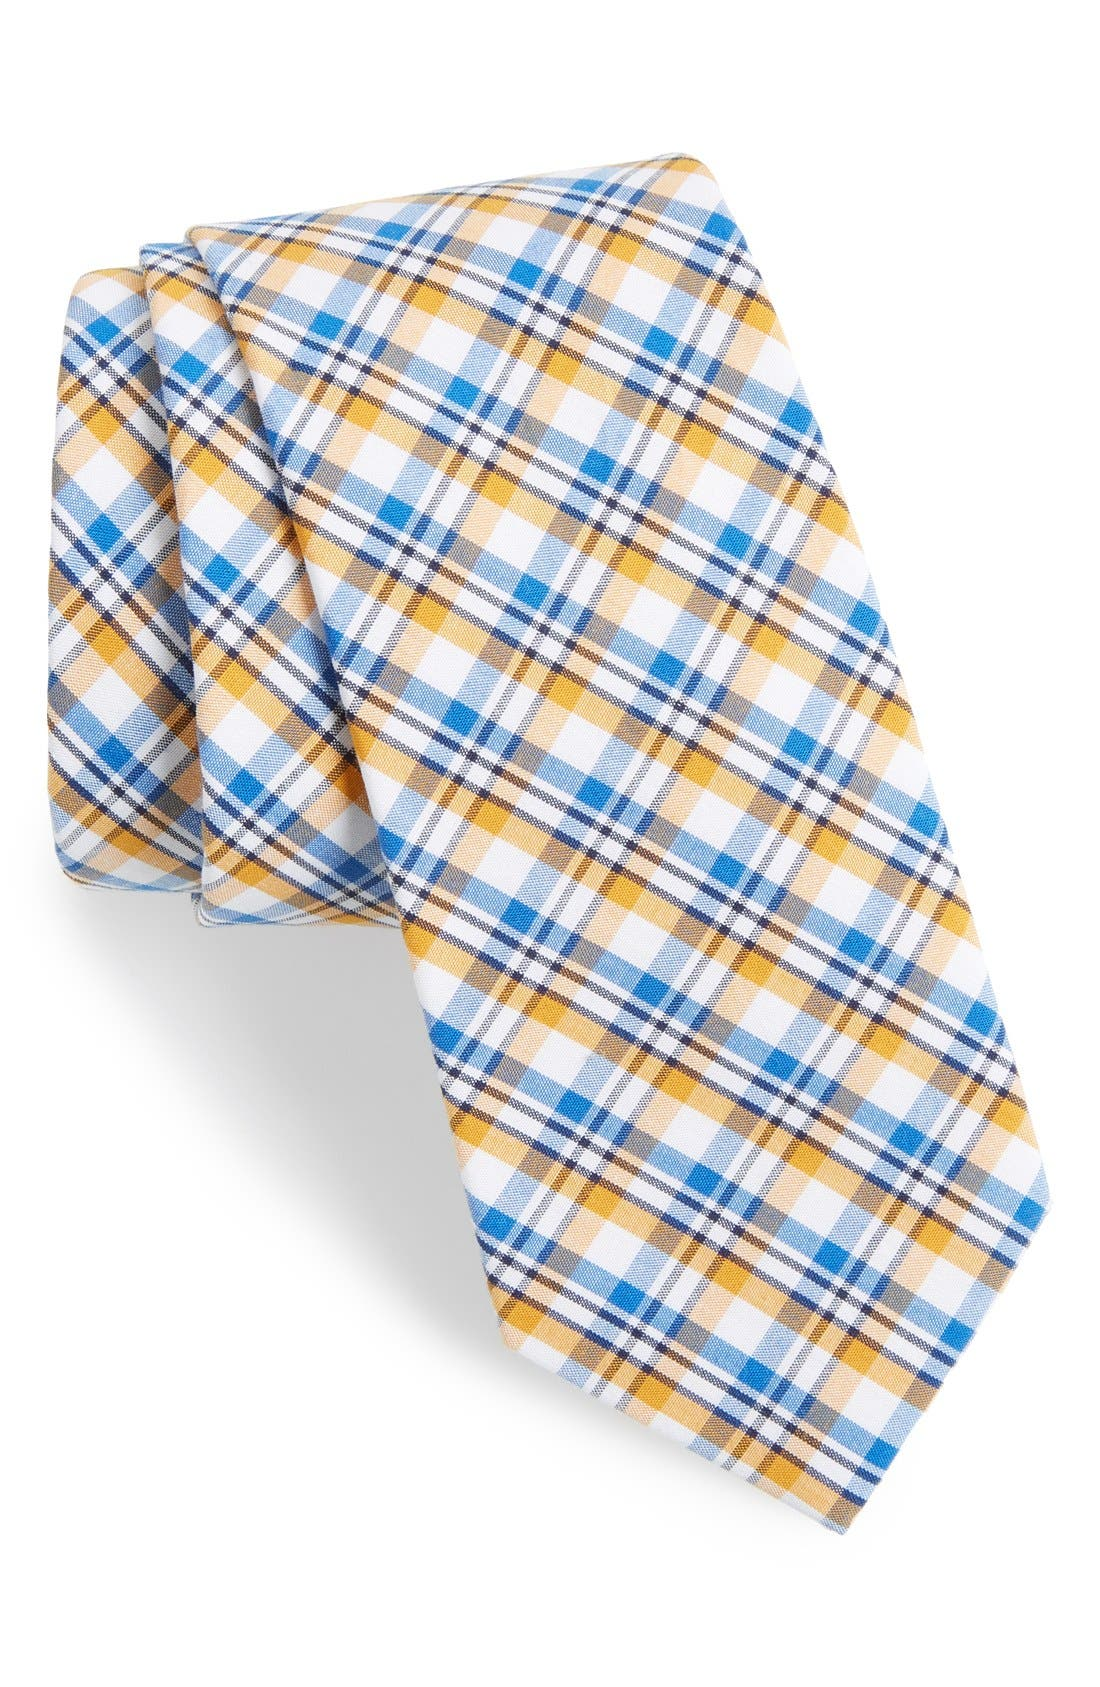 'Boomer' Plaid Cotton Tie,                             Main thumbnail 4, color,